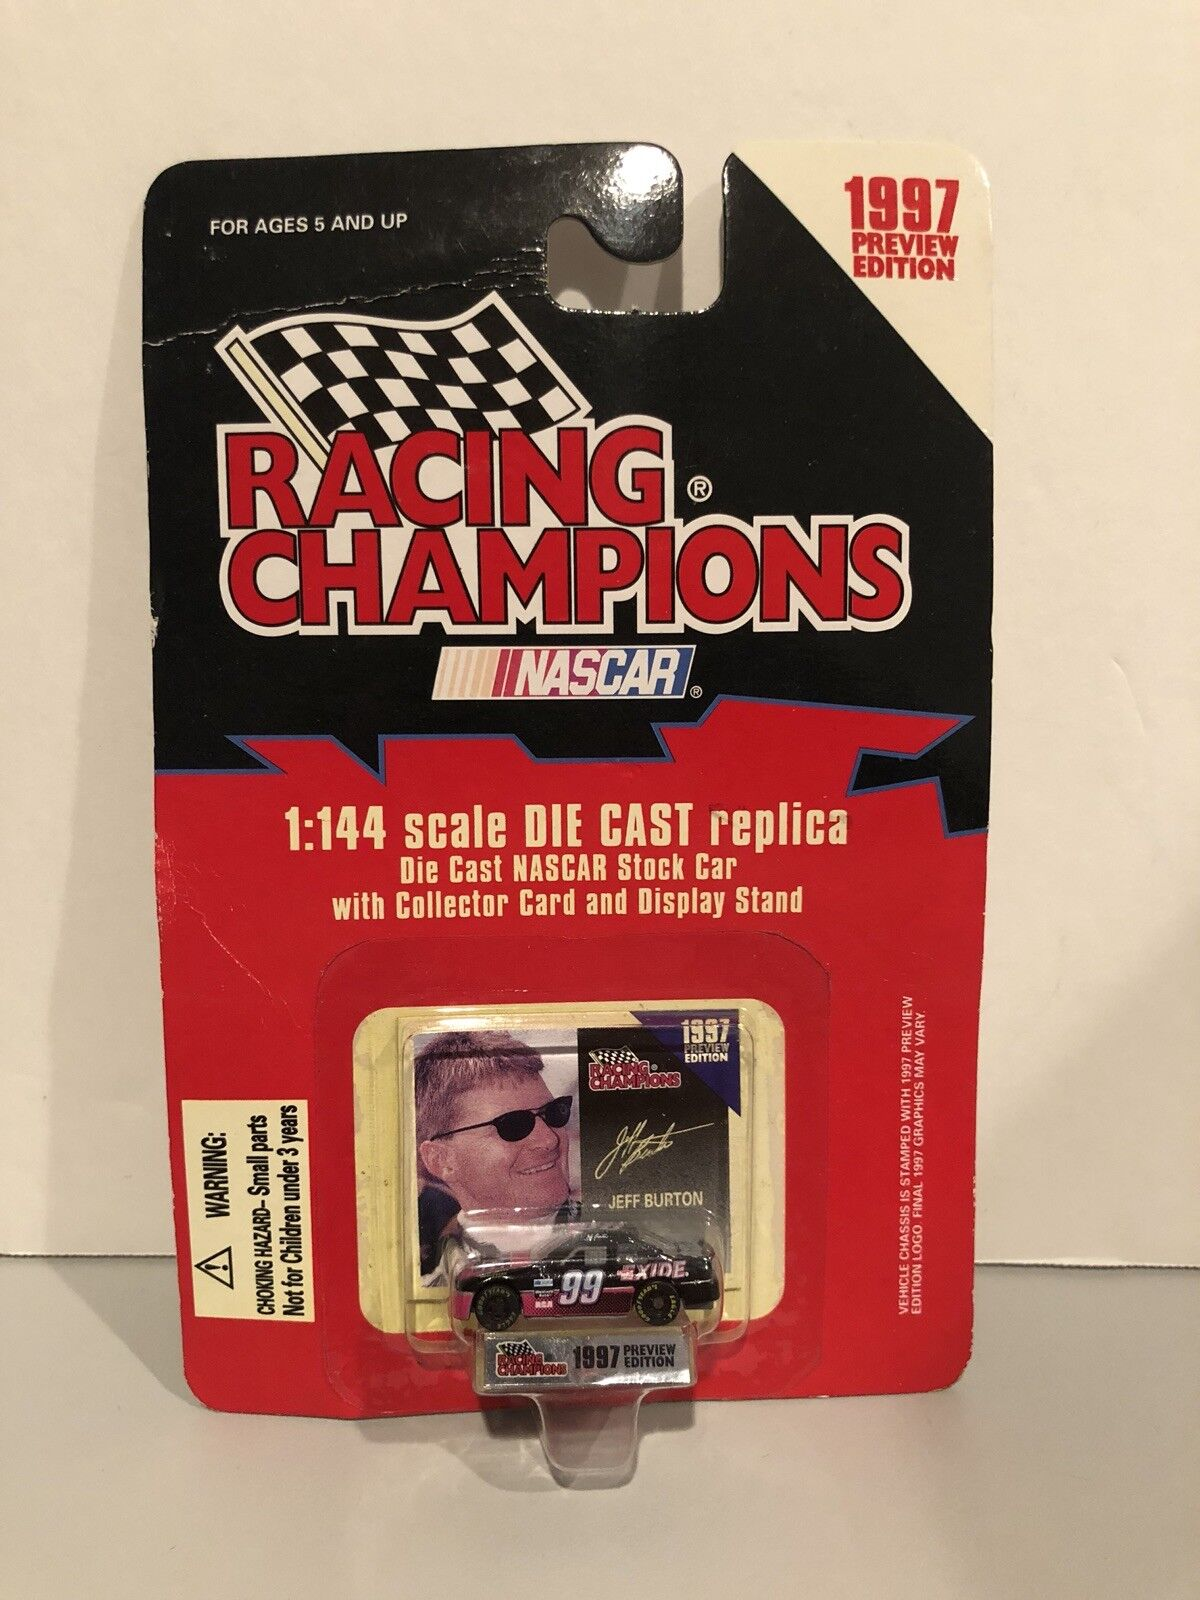 Nascar Racing Champions 1997 Preview Edition 1 144 Jeff Burton Diecast Car NEW